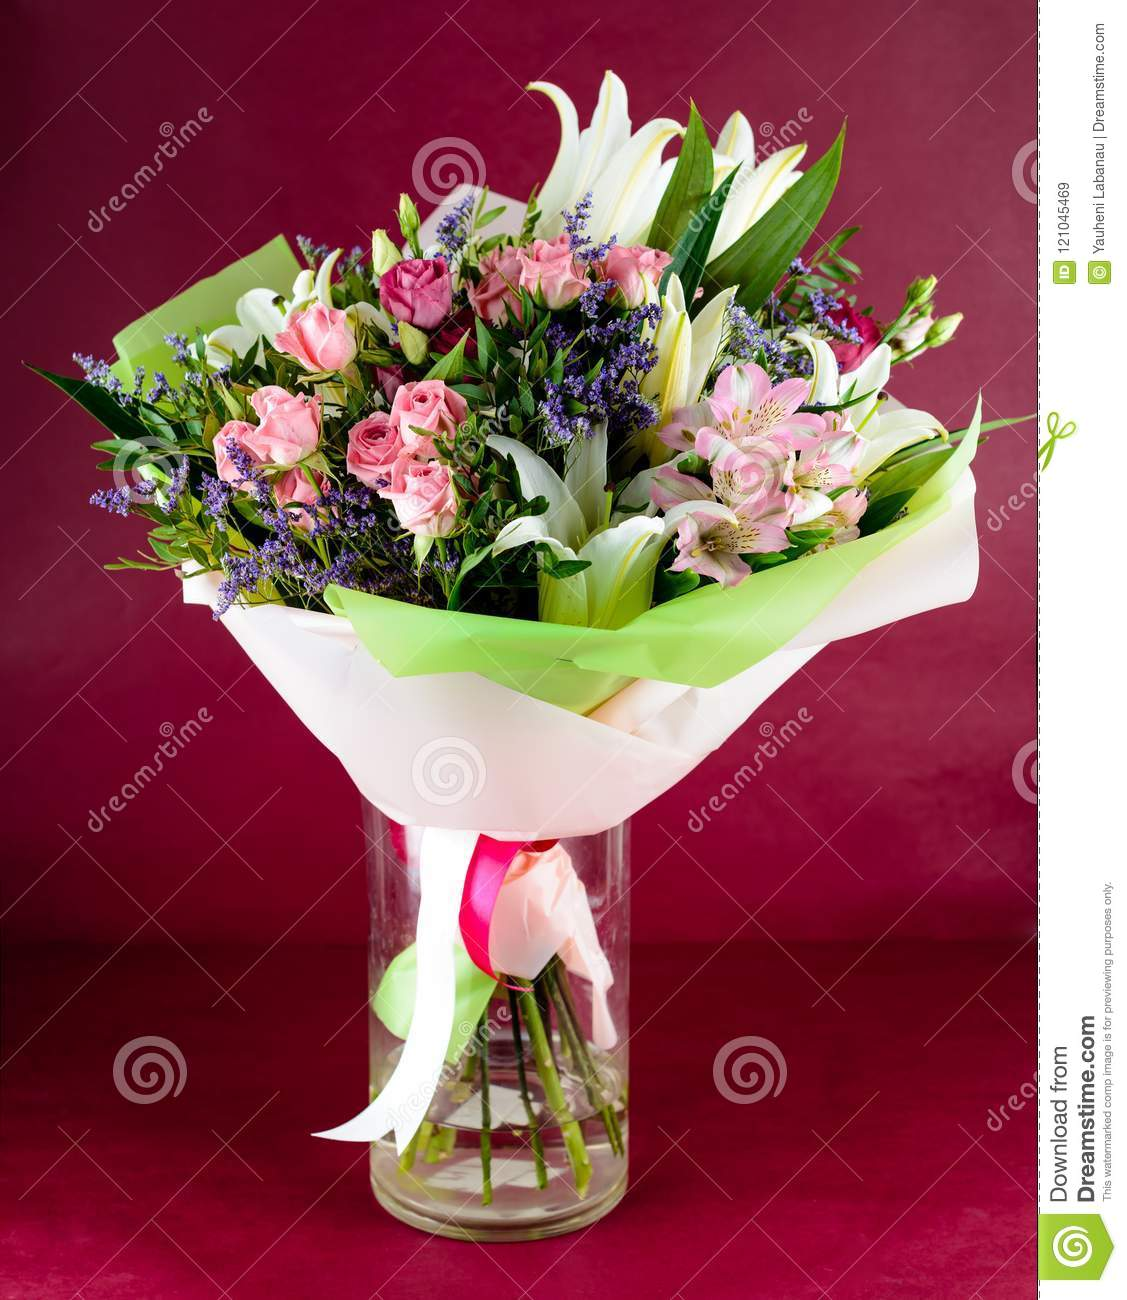 Beautiful Bouquet Of Pink Roses And Lily Flowers In A Vase On Pi